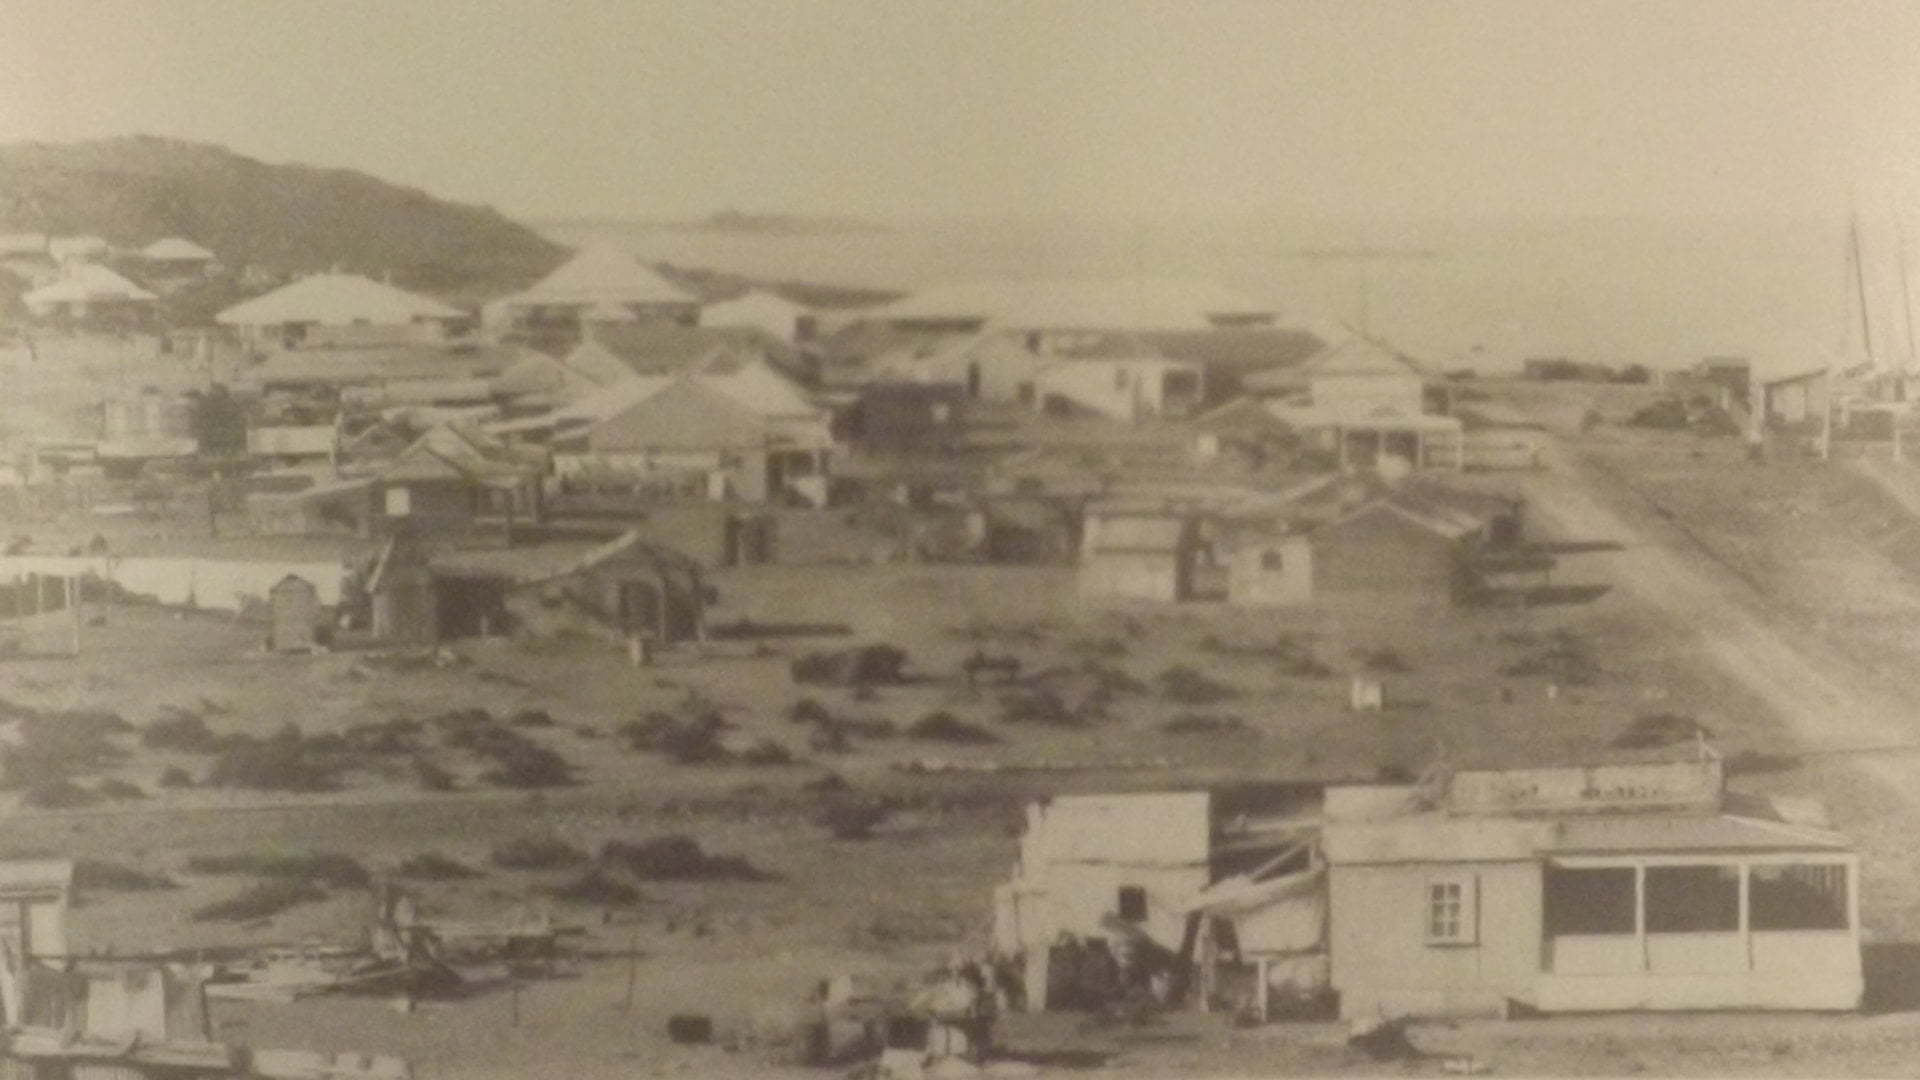 Cossack historical village photo from 1897